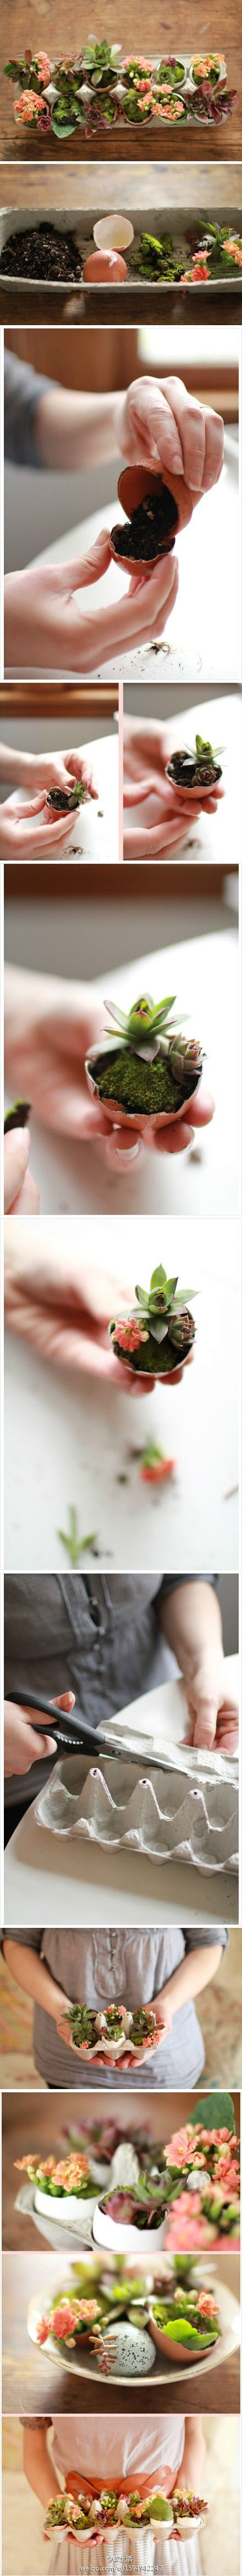 Egg carton succulent garden - great garden project with kids. Even with